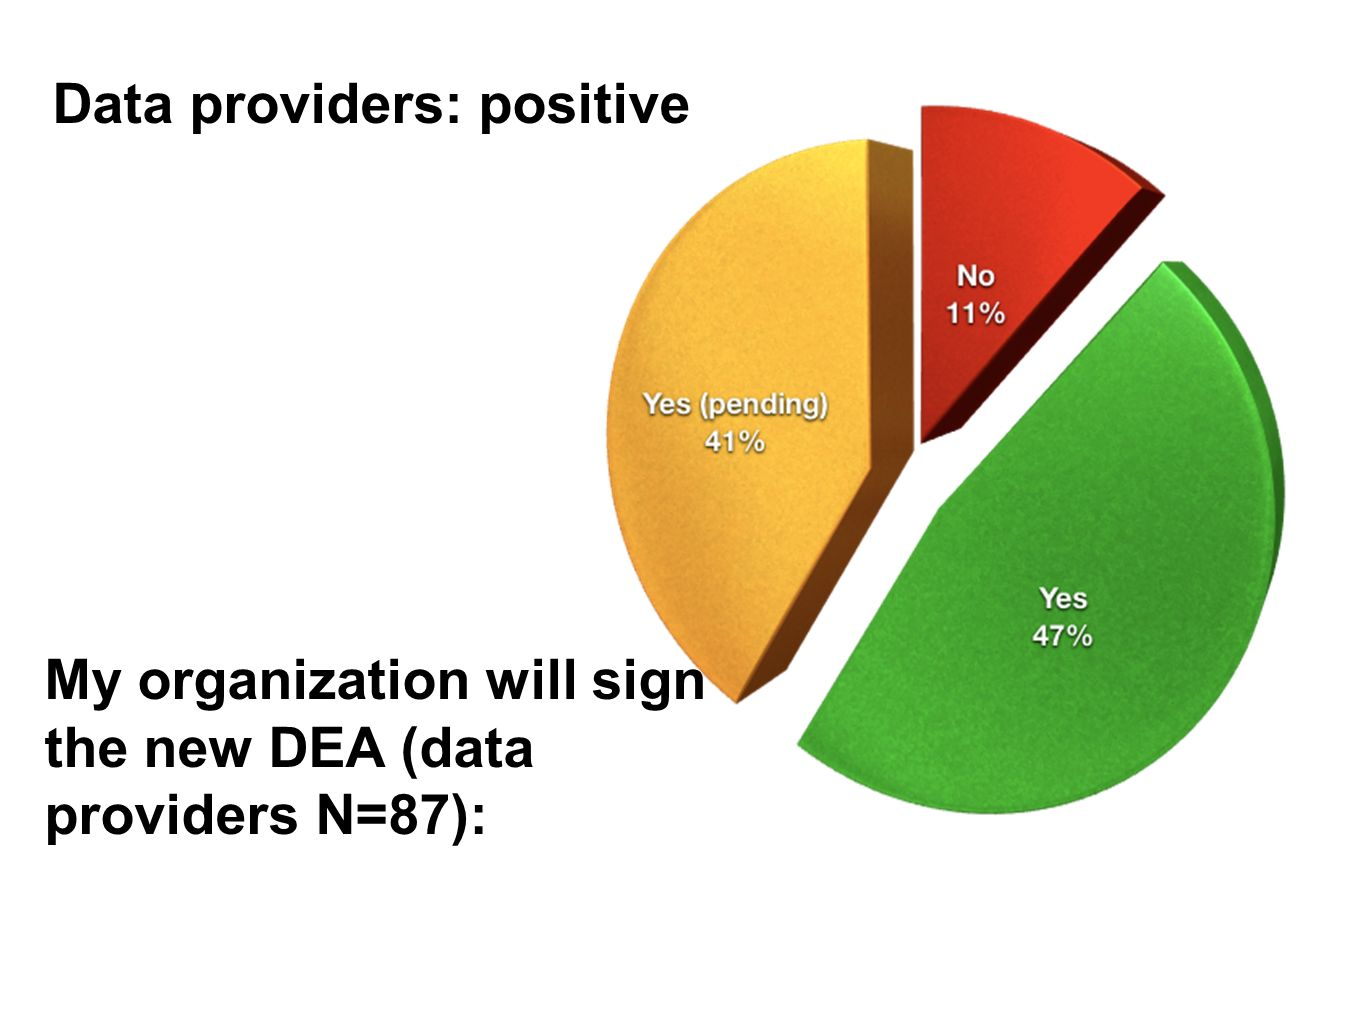 My organization will sign the new DEA (data providers N=87): Data providers: positive